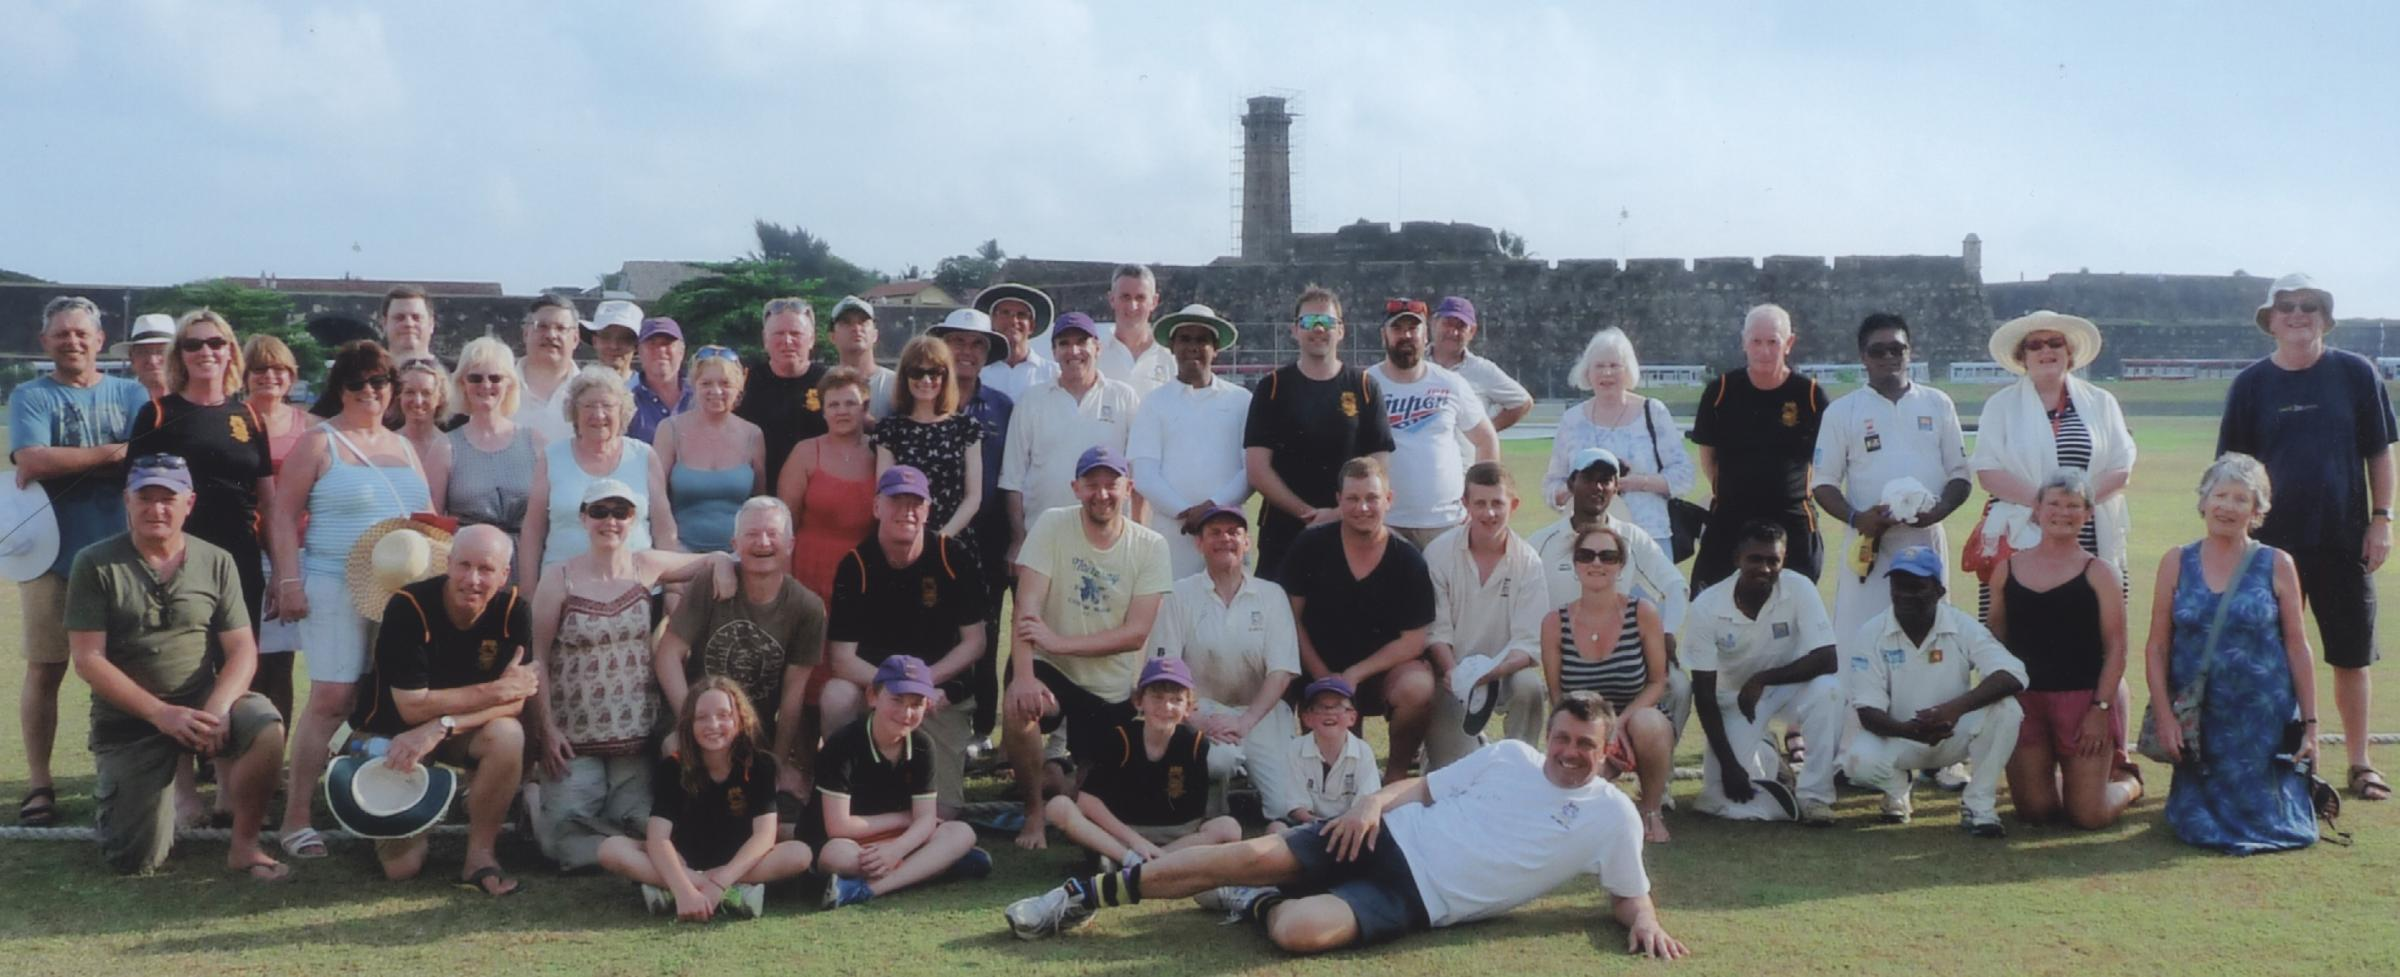 South Oxfordshire Amateurs tourists pictured in front of the famous Fort on the Galle Test ground in Sri Lanka